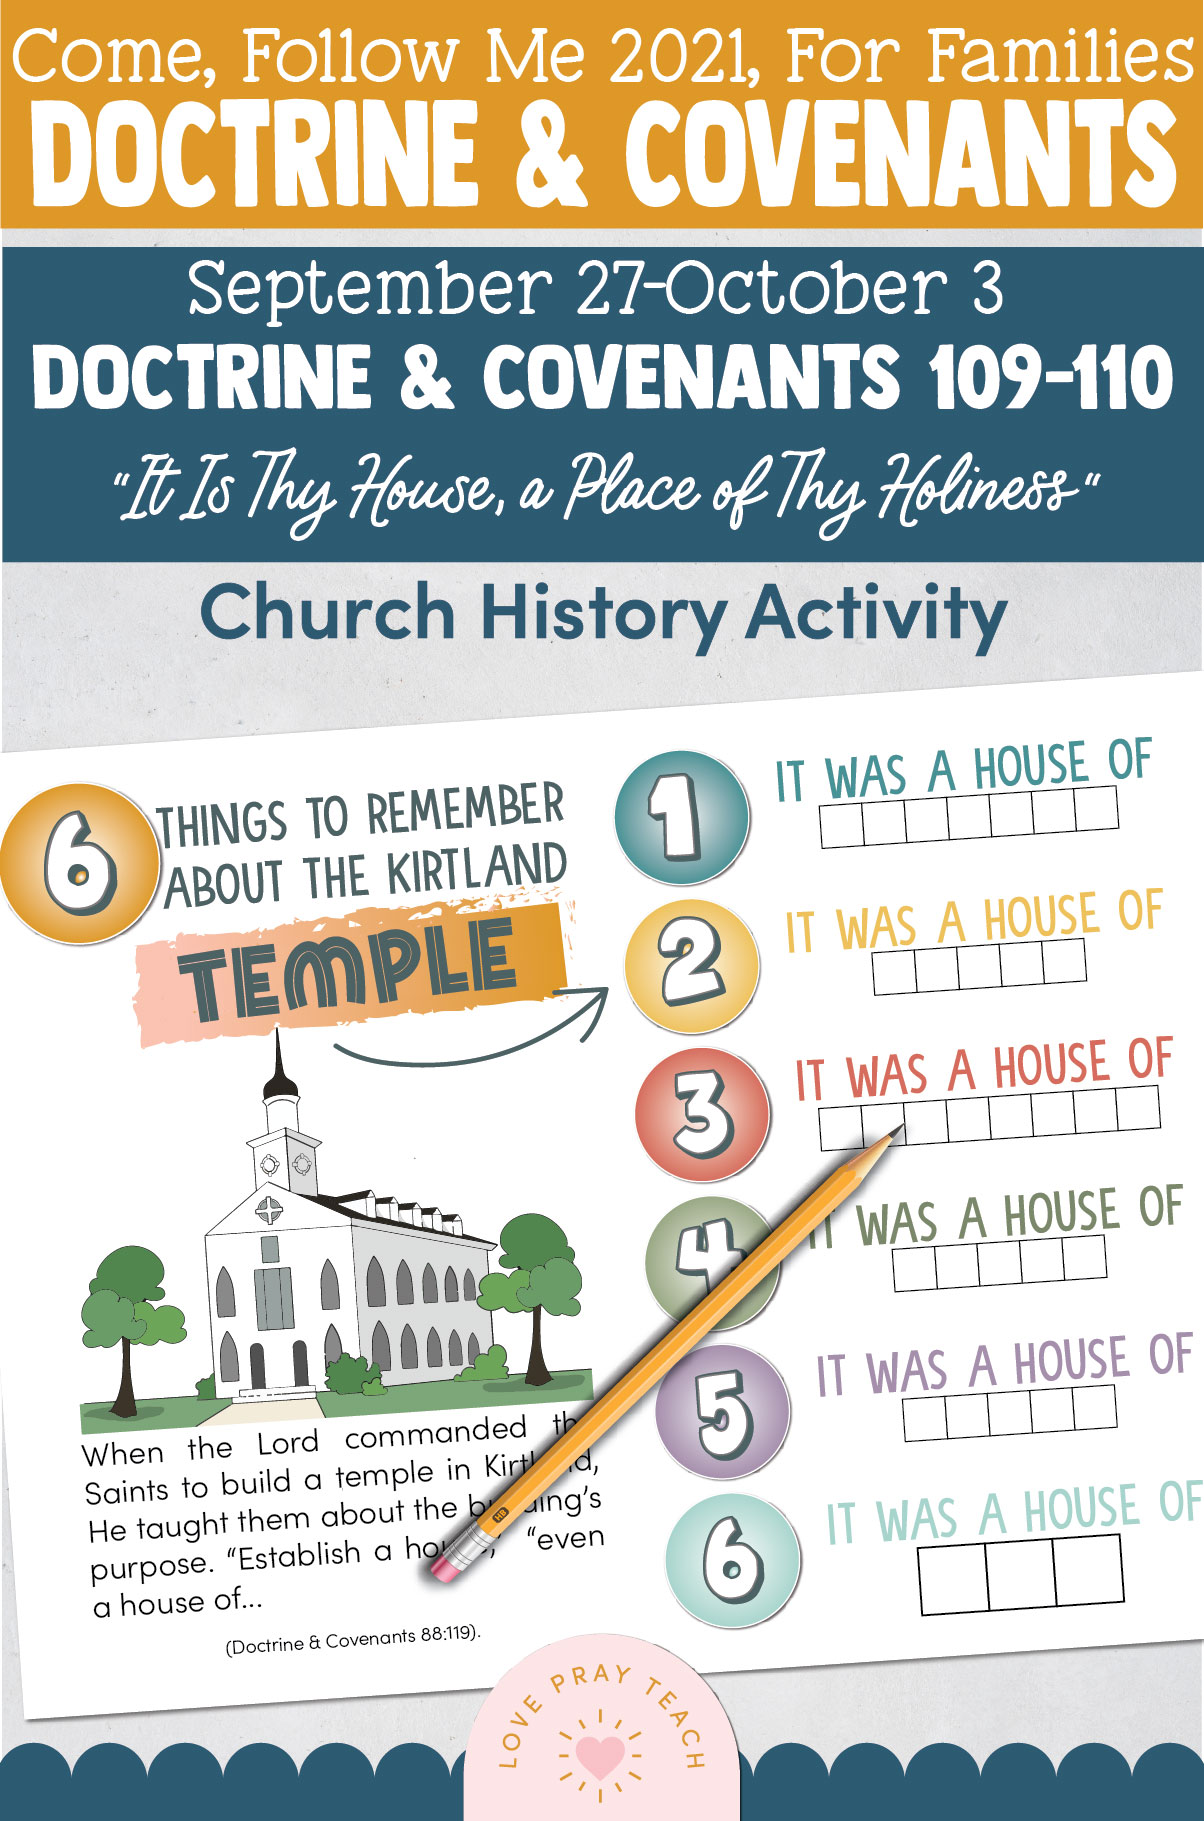 """Come, Follow Me—For Individuals and Families: Doctrine And Covenants 2021, October Week 1 Doctrine and Covenants 109-110: September 27-October 3, """"It Is Thy House, a Place of Thy Holiness"""""""